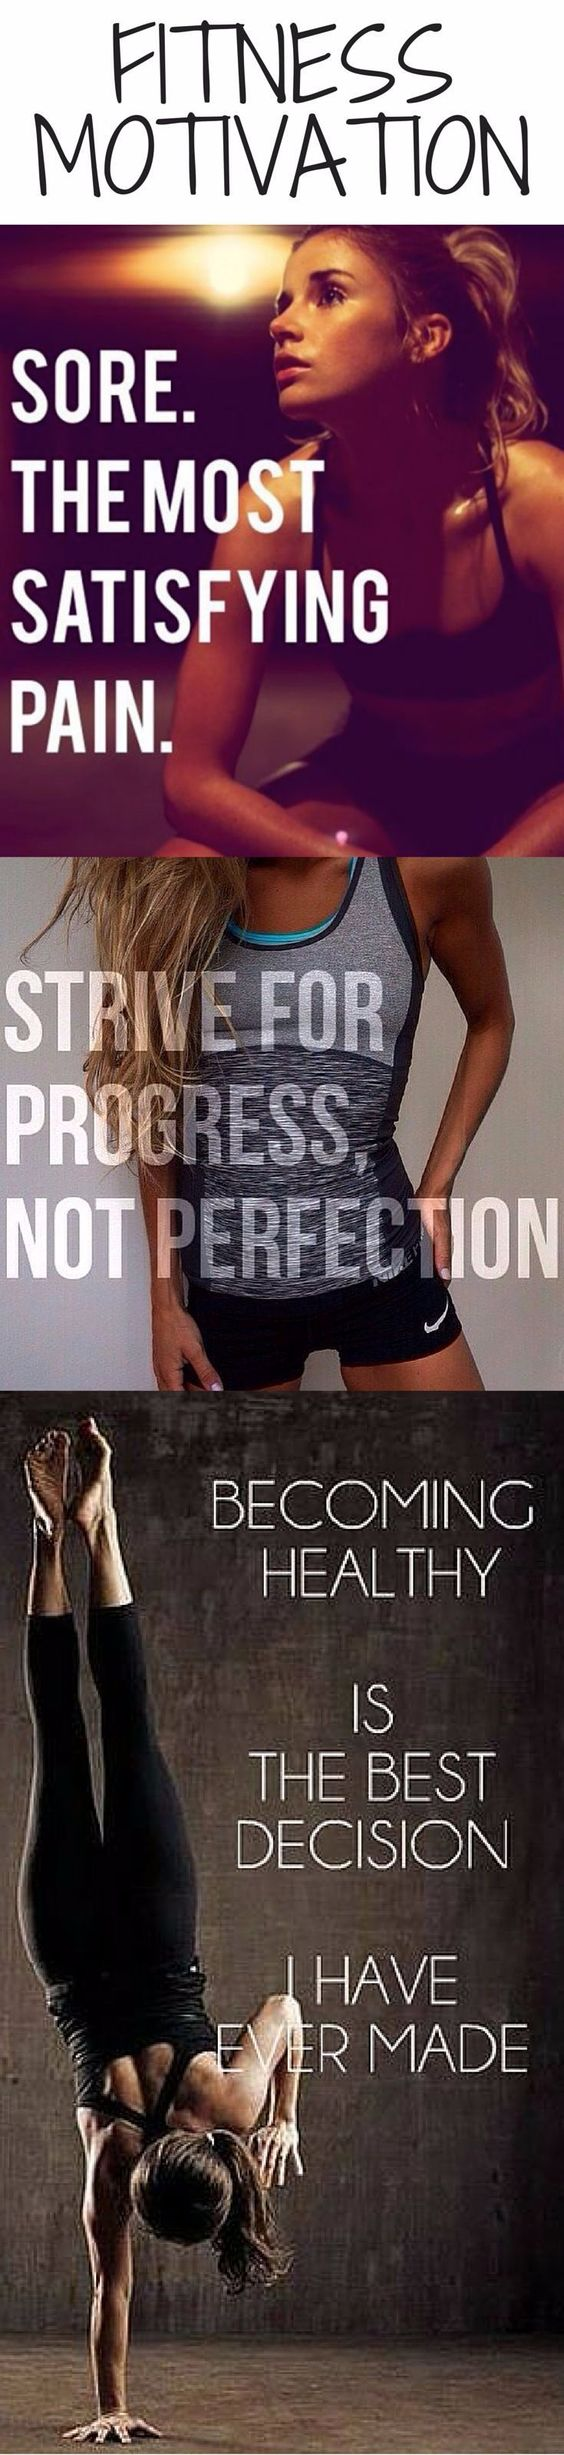 """strive for progress not perfection""..I like the sound of that!"